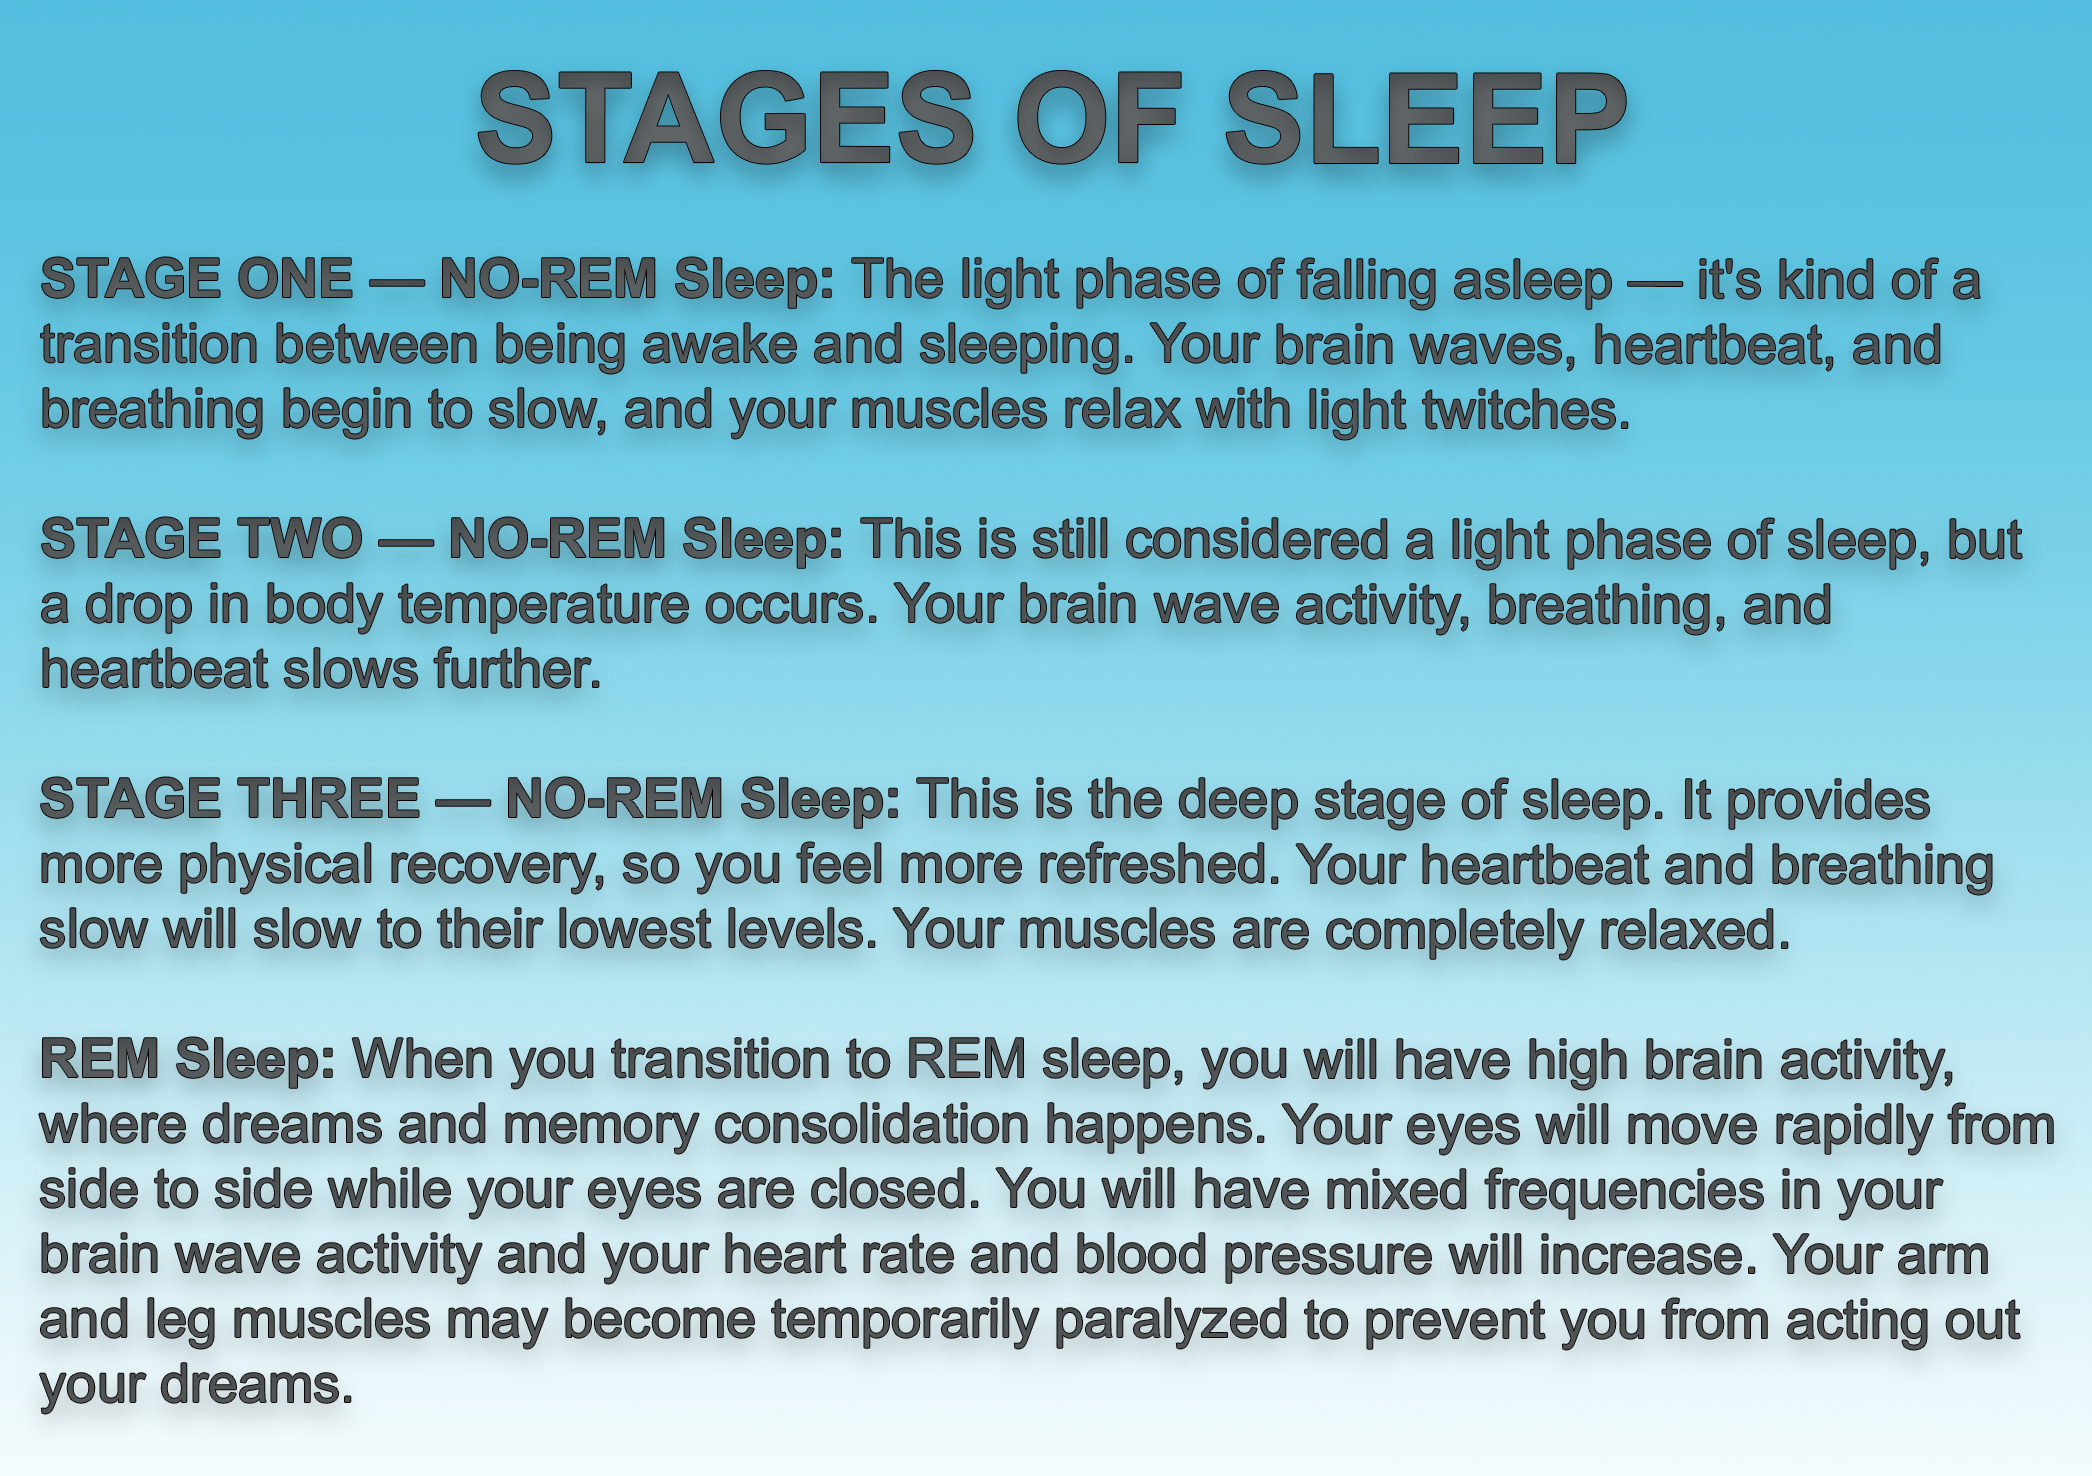 STAGE ONE — no-REM Sleep: The light phase of falling asleep — it's kind of a transition between being awake and sleeping. Your brain waves, heartbeat, and breathing begin to slow, and your muscles relax with light twitches.